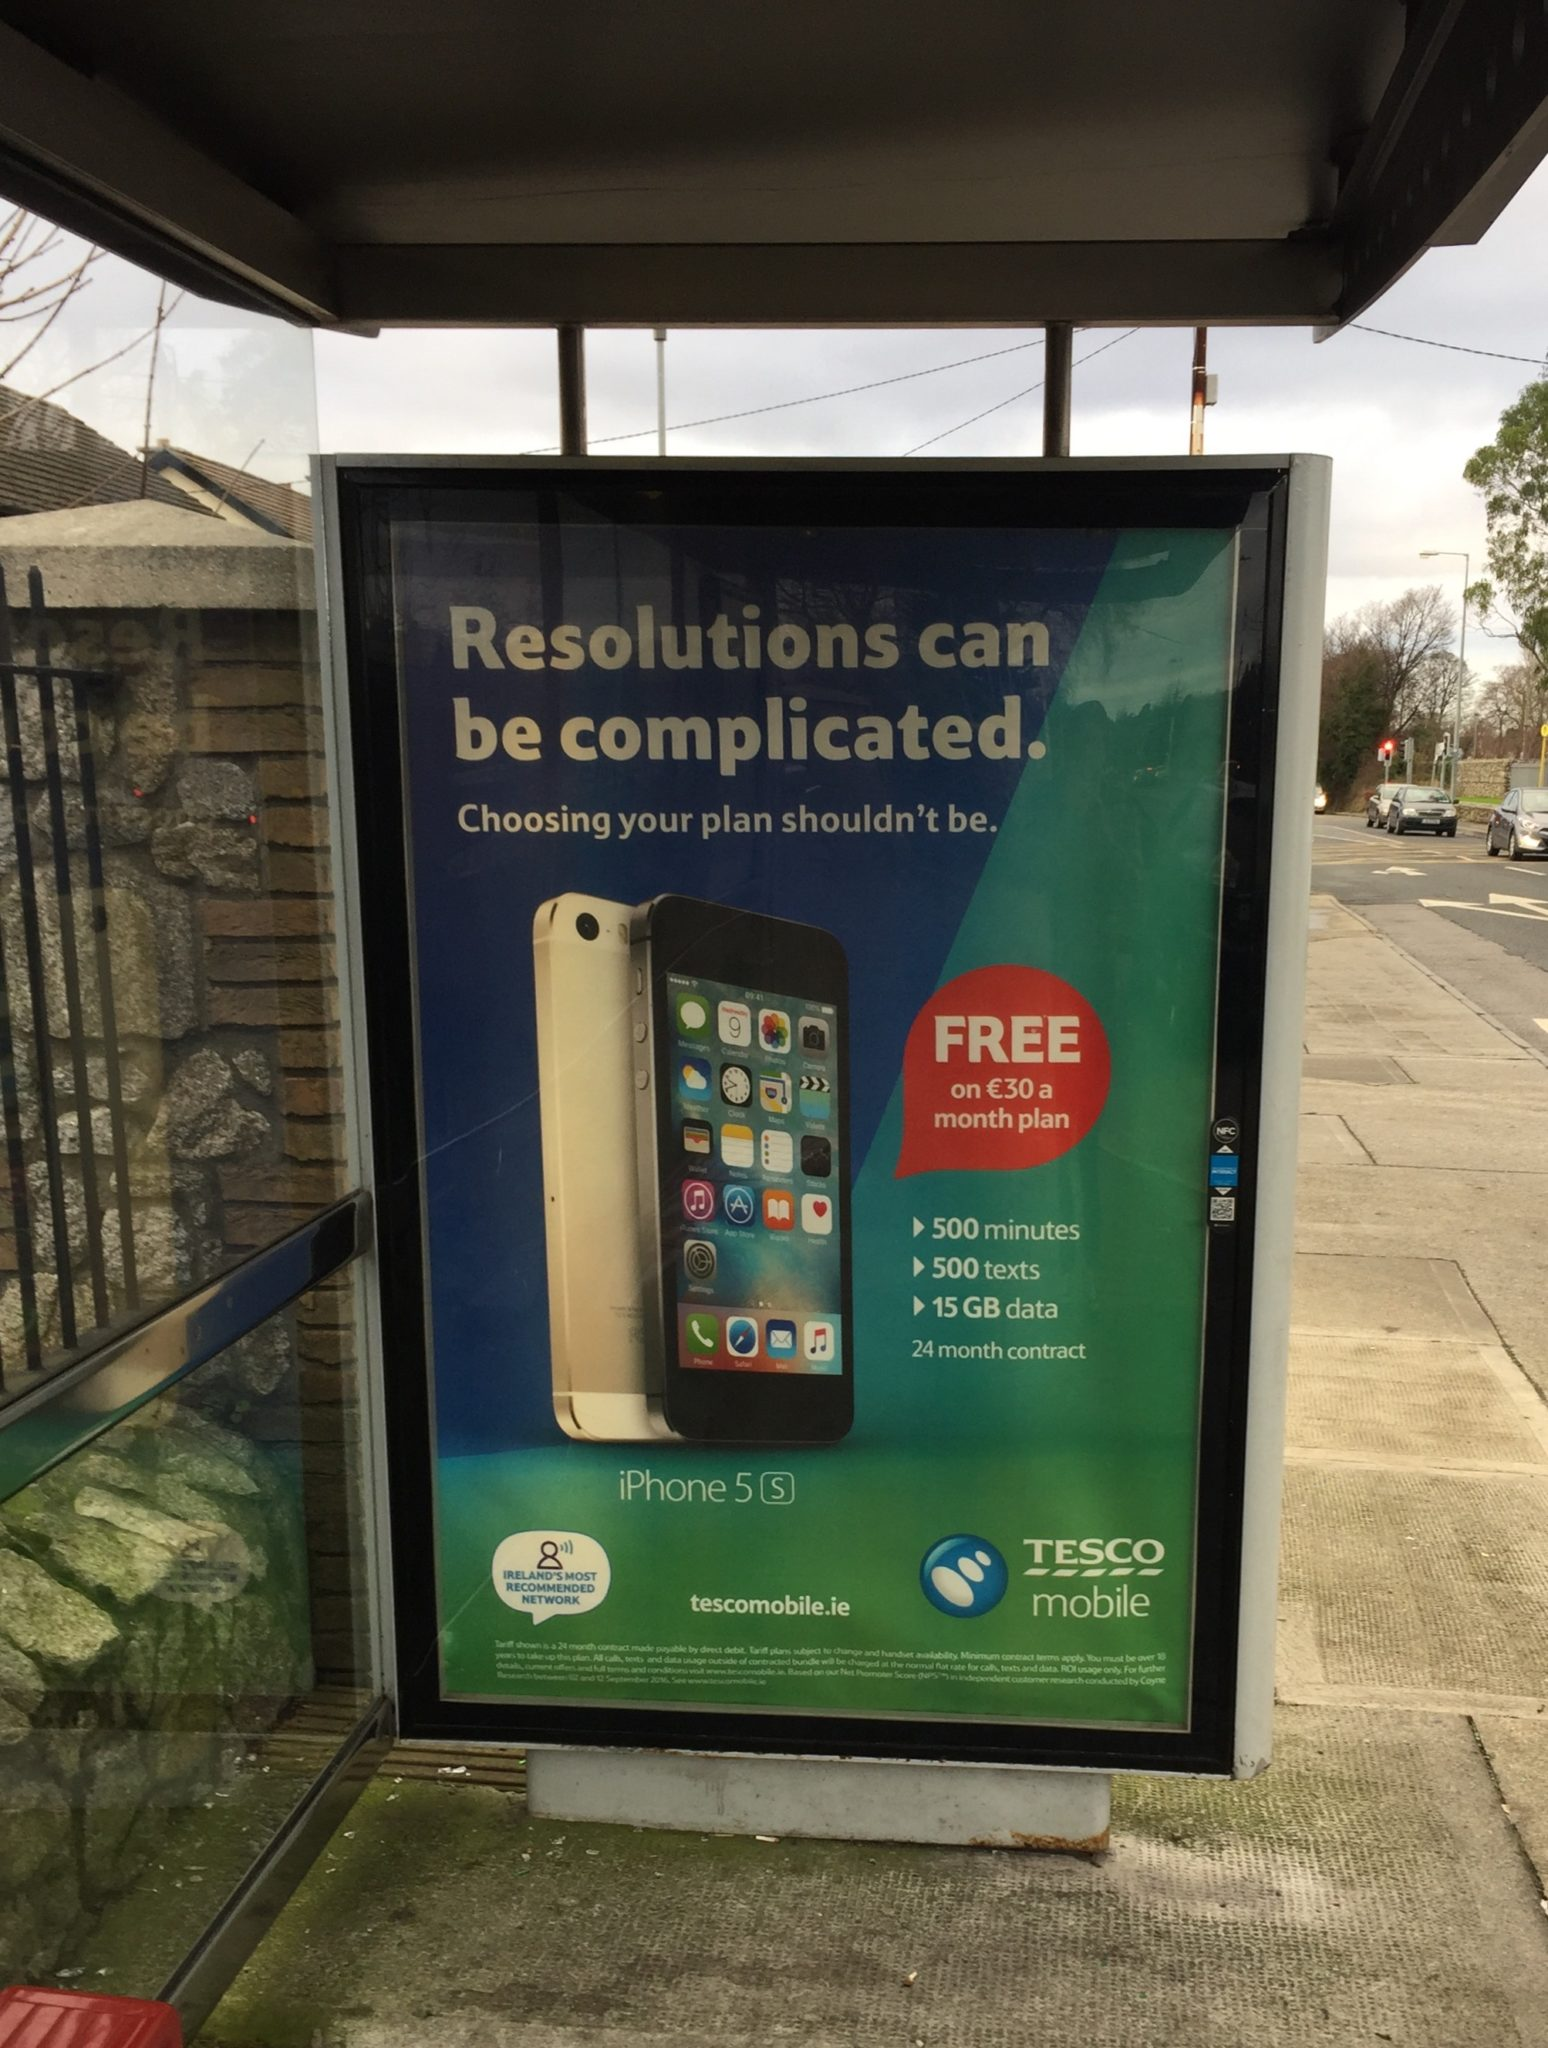 Tesco Mobile – Resolutions can be complicated – choosing your plan shouldnt be.